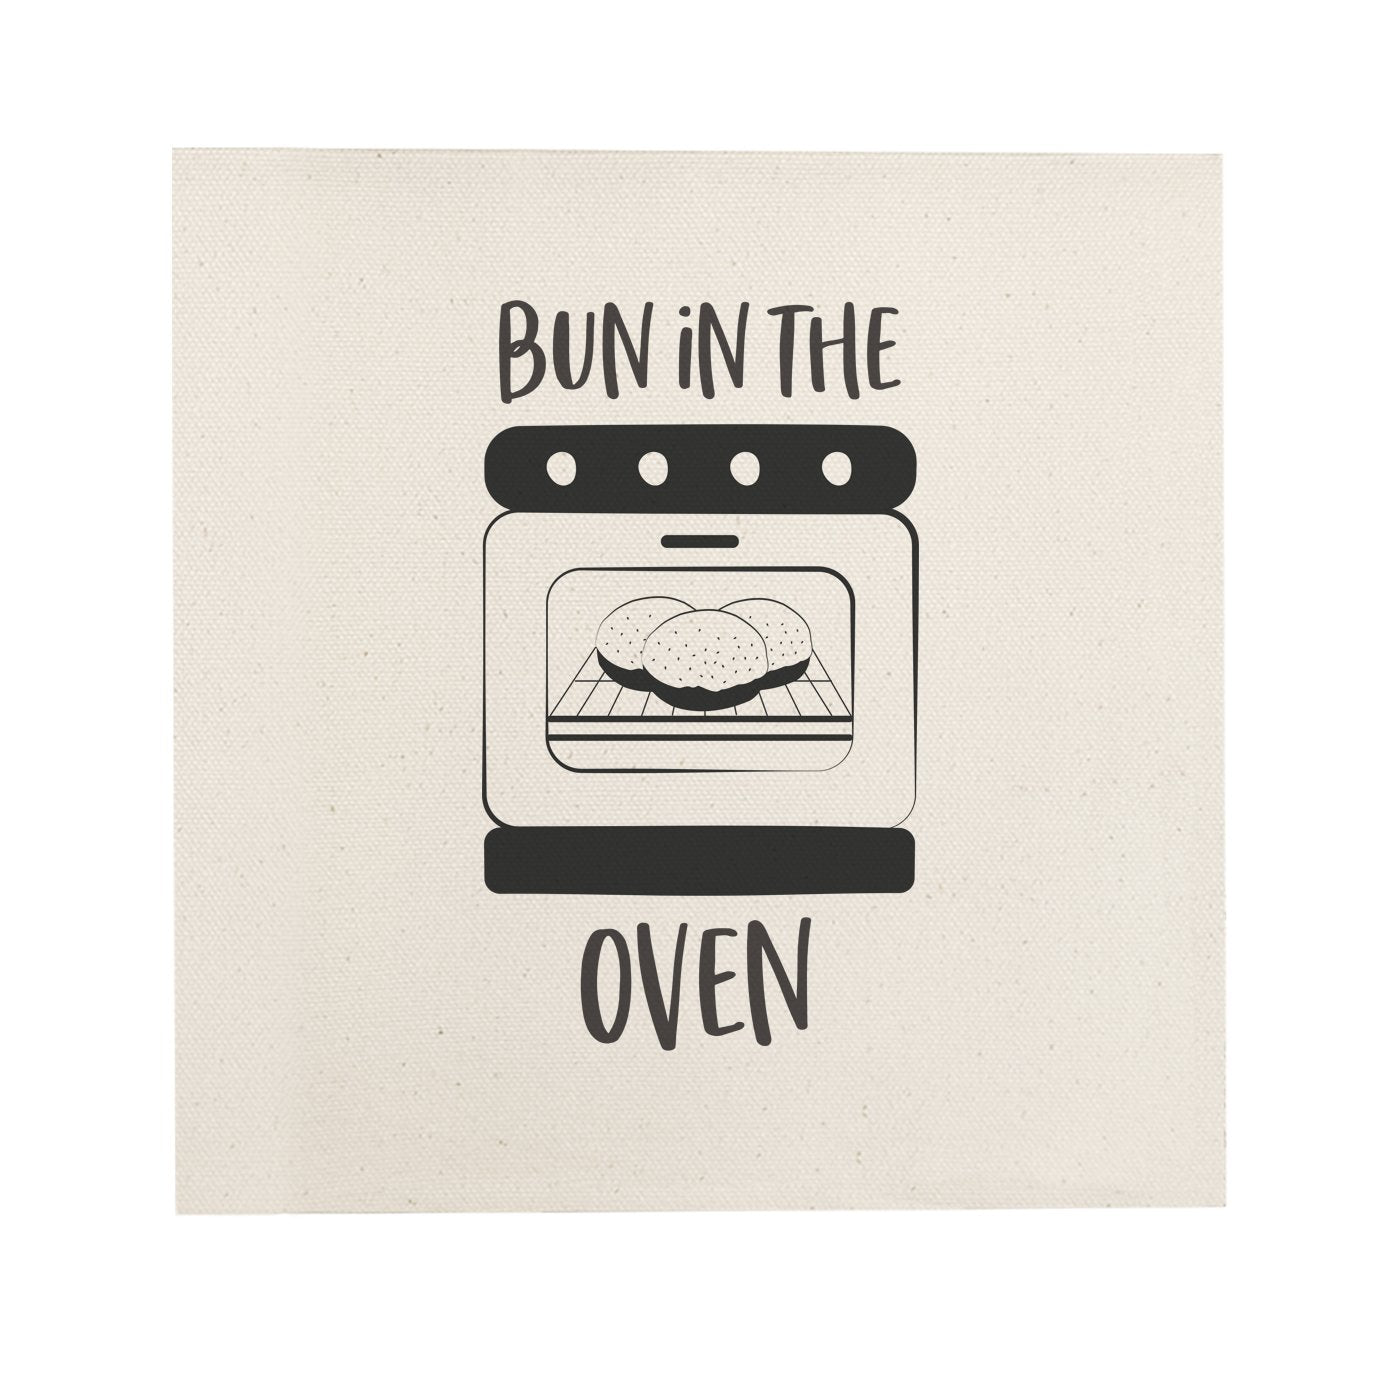 Bun in the Oven Canvas Kitchen Wall Art